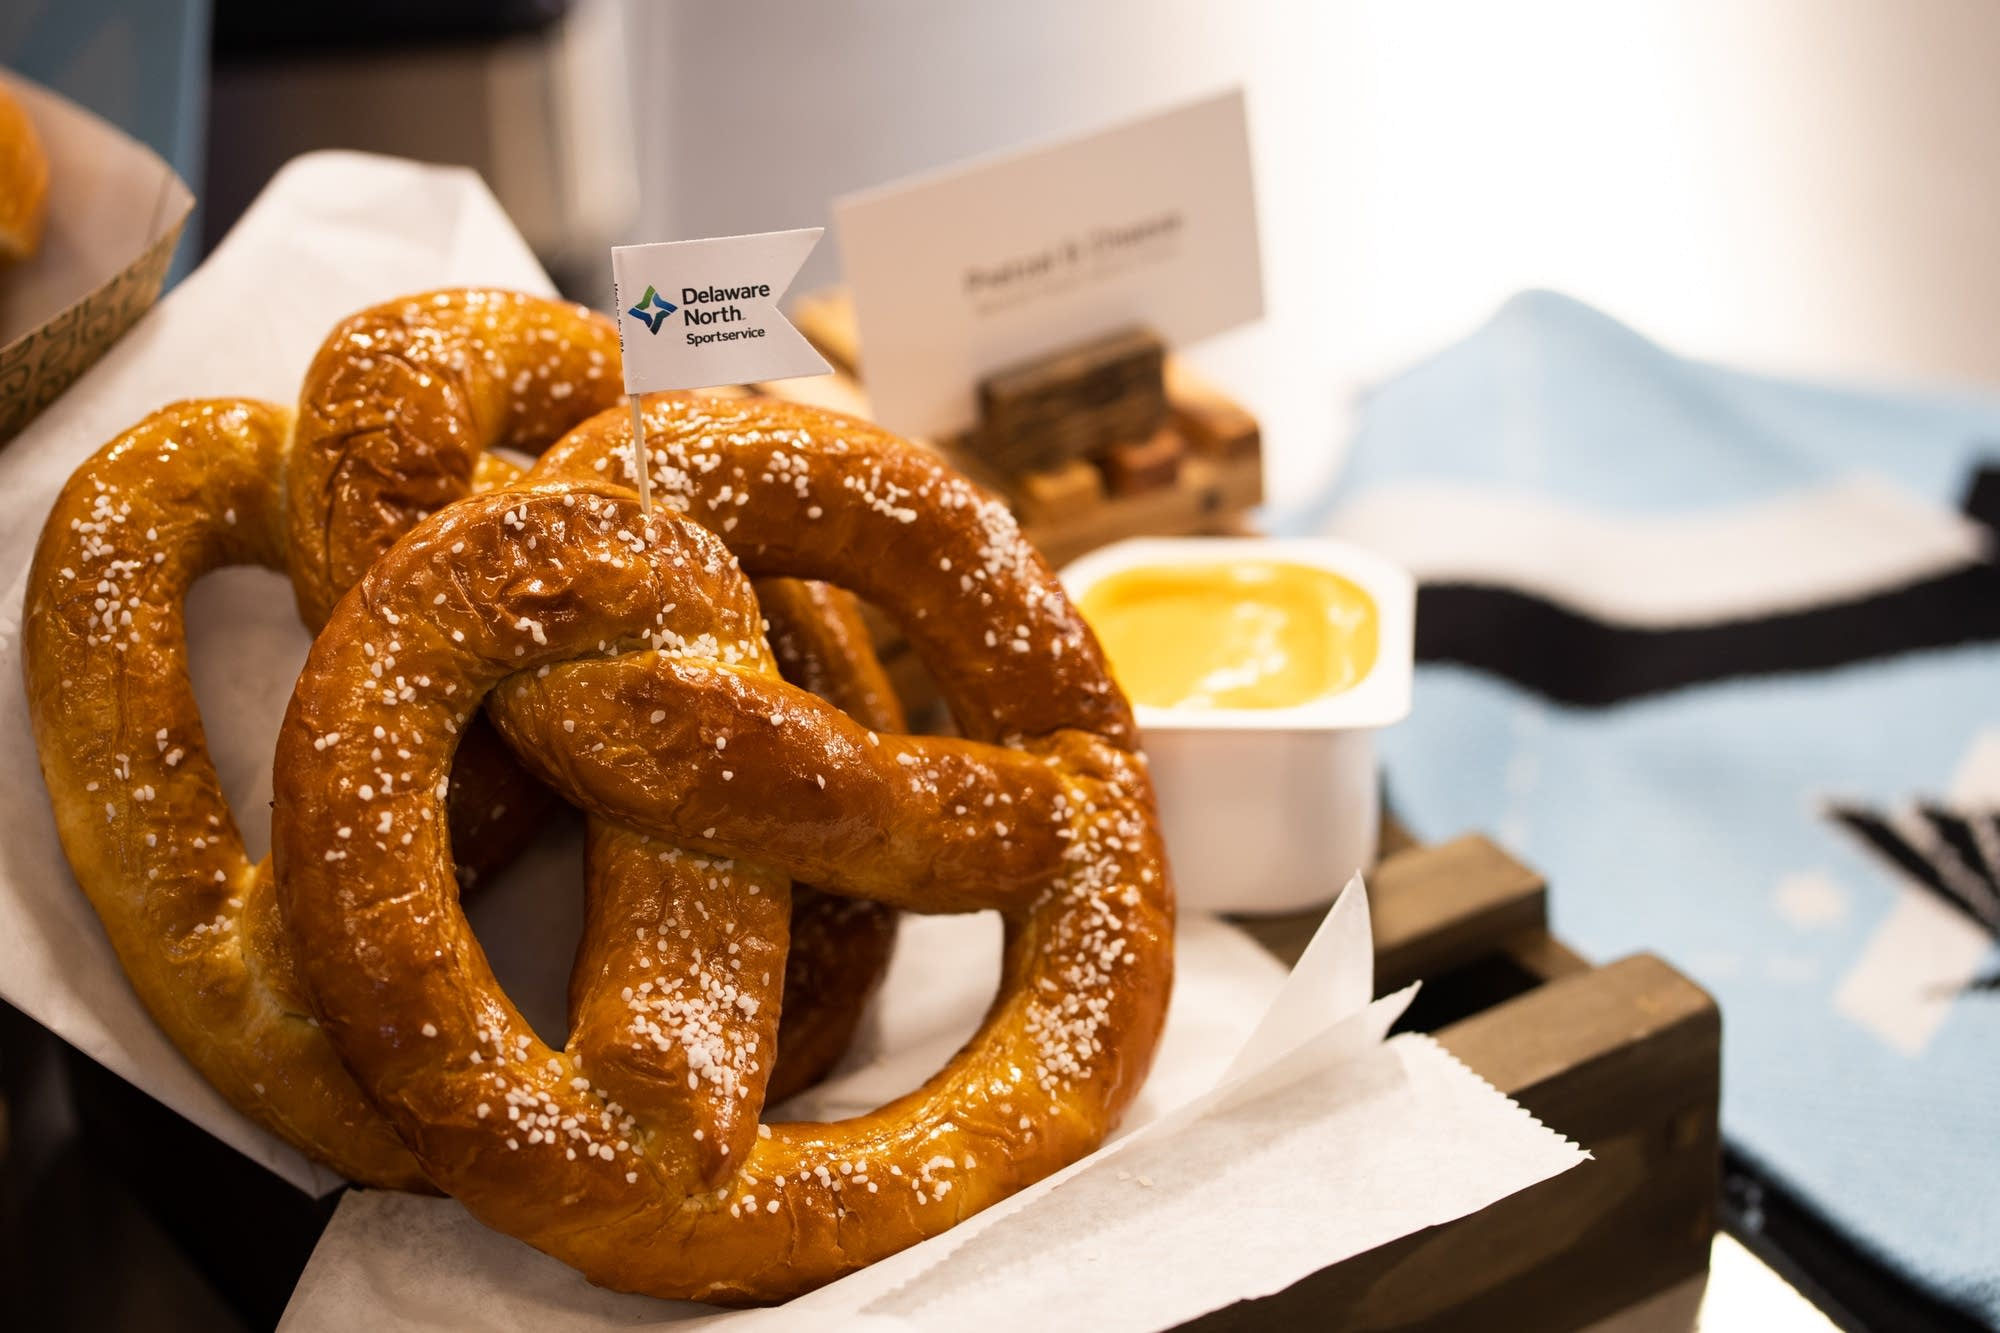 A pretzel and cheese at Allianz Field.